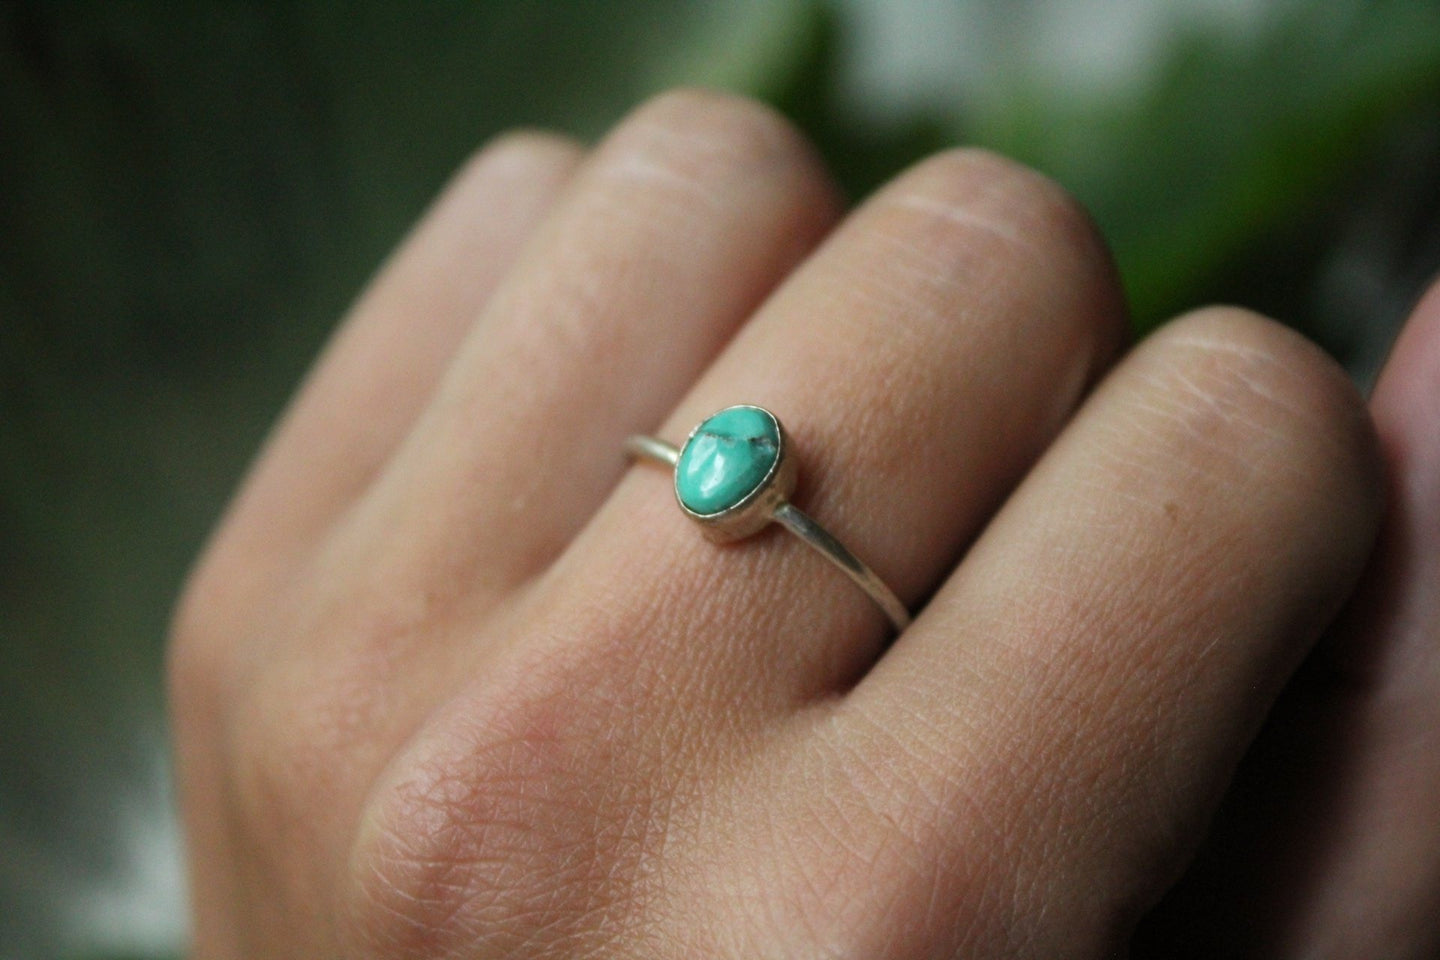 Size 8.5; Turquoise Ring